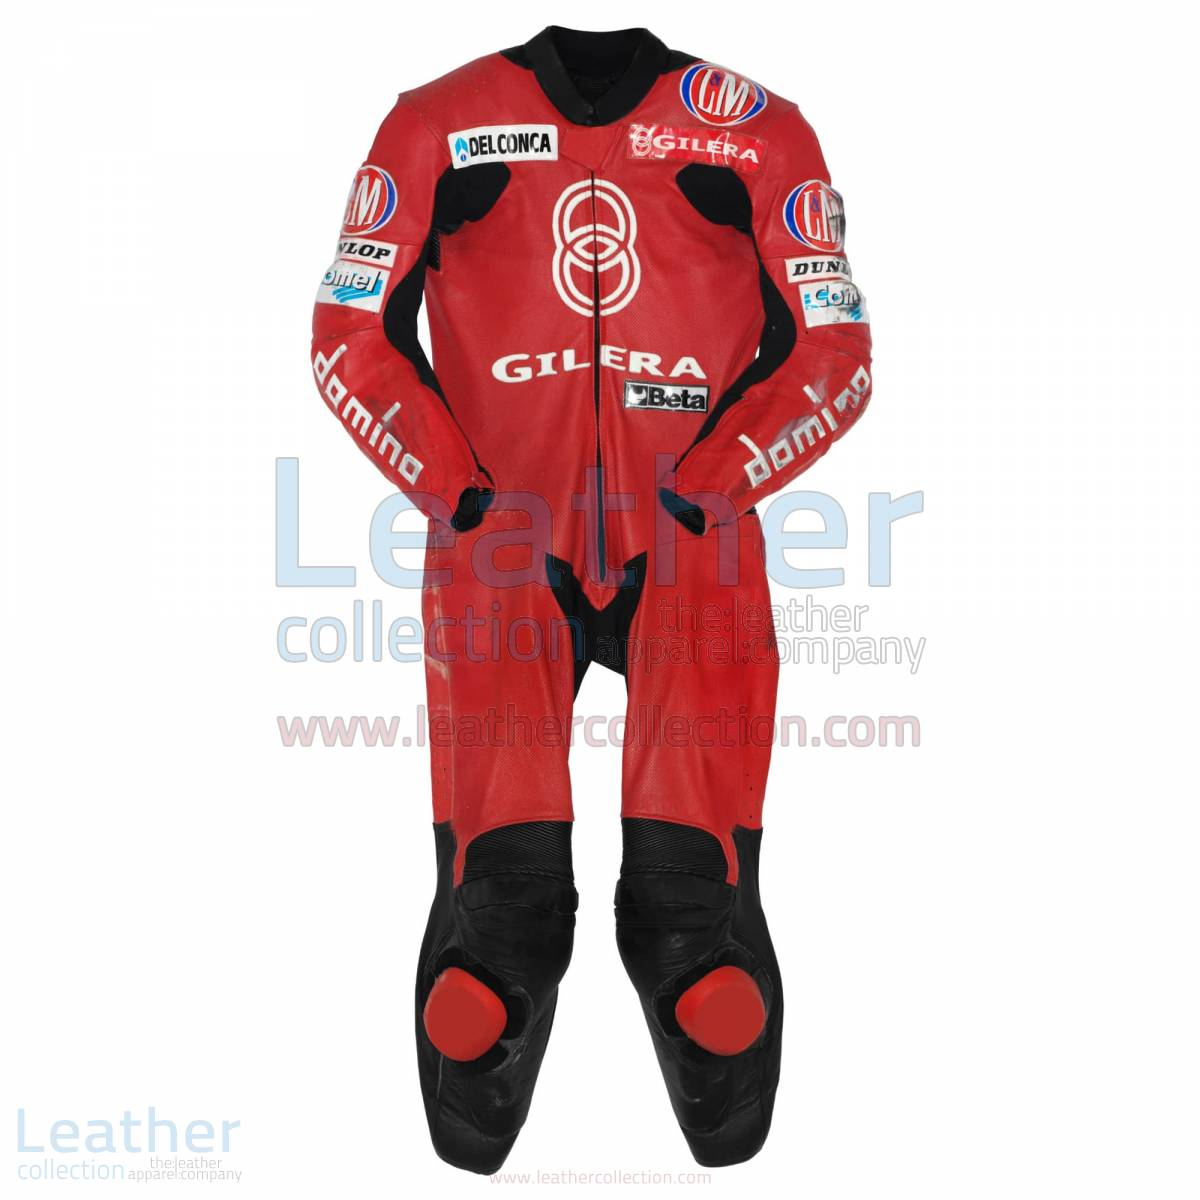 Manuel Poggiali Gilera Motorcycle Race Suit GP 2001